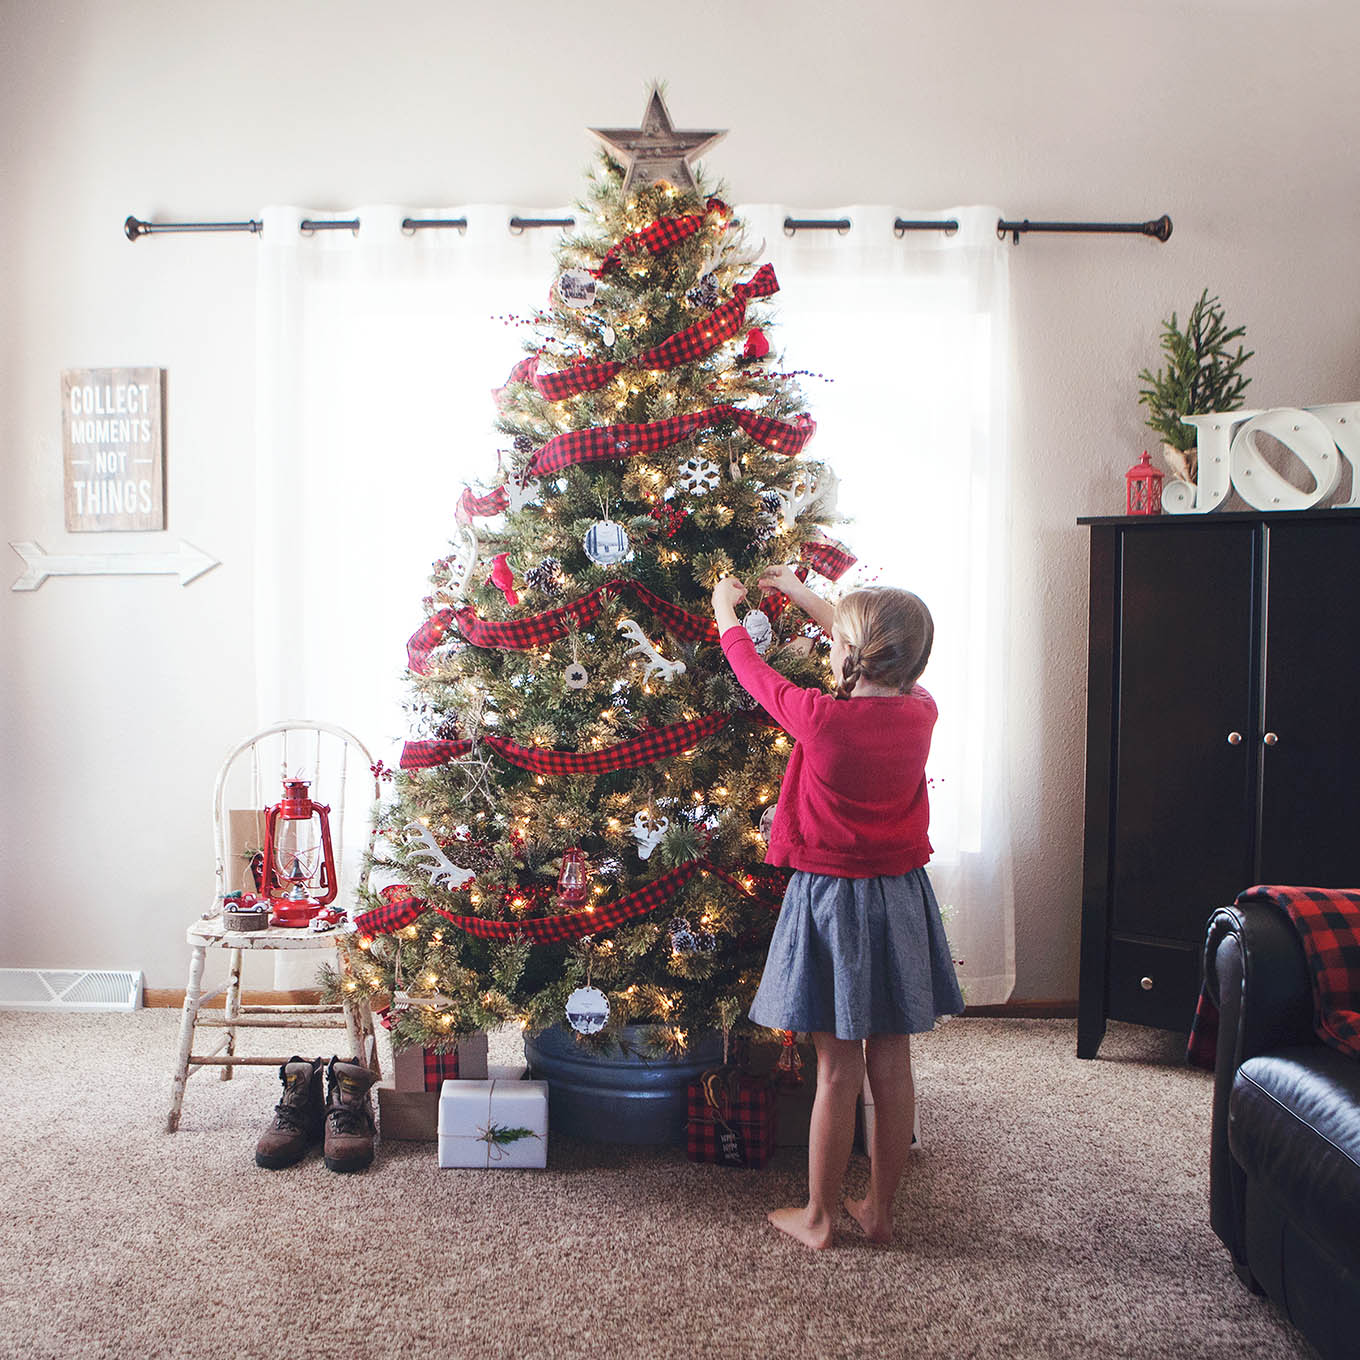 We're celebrating our family's most memorable outdoor adventures with an Outdoor Adventures themed Christmas tree.